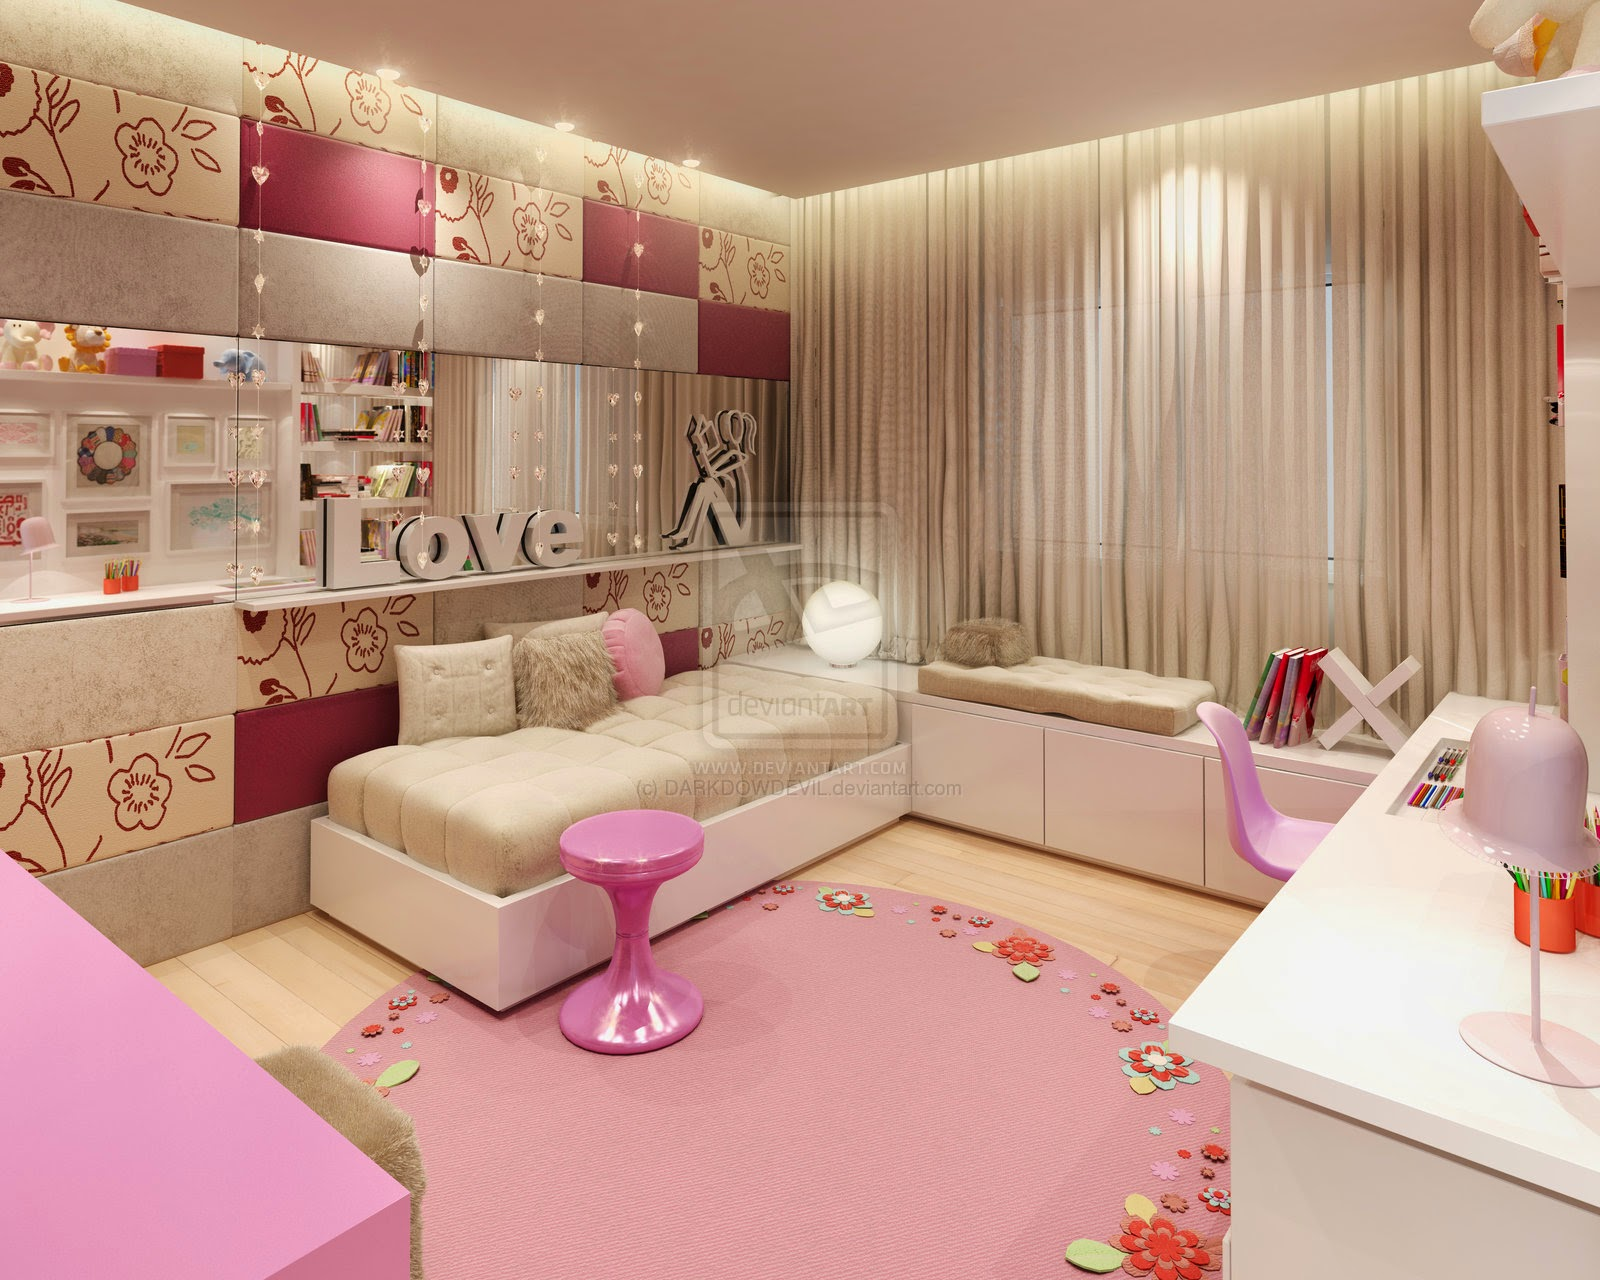 18 girls and teenage bedroom designs girls and teenage bedroom designs - Design A Girls Bedroom